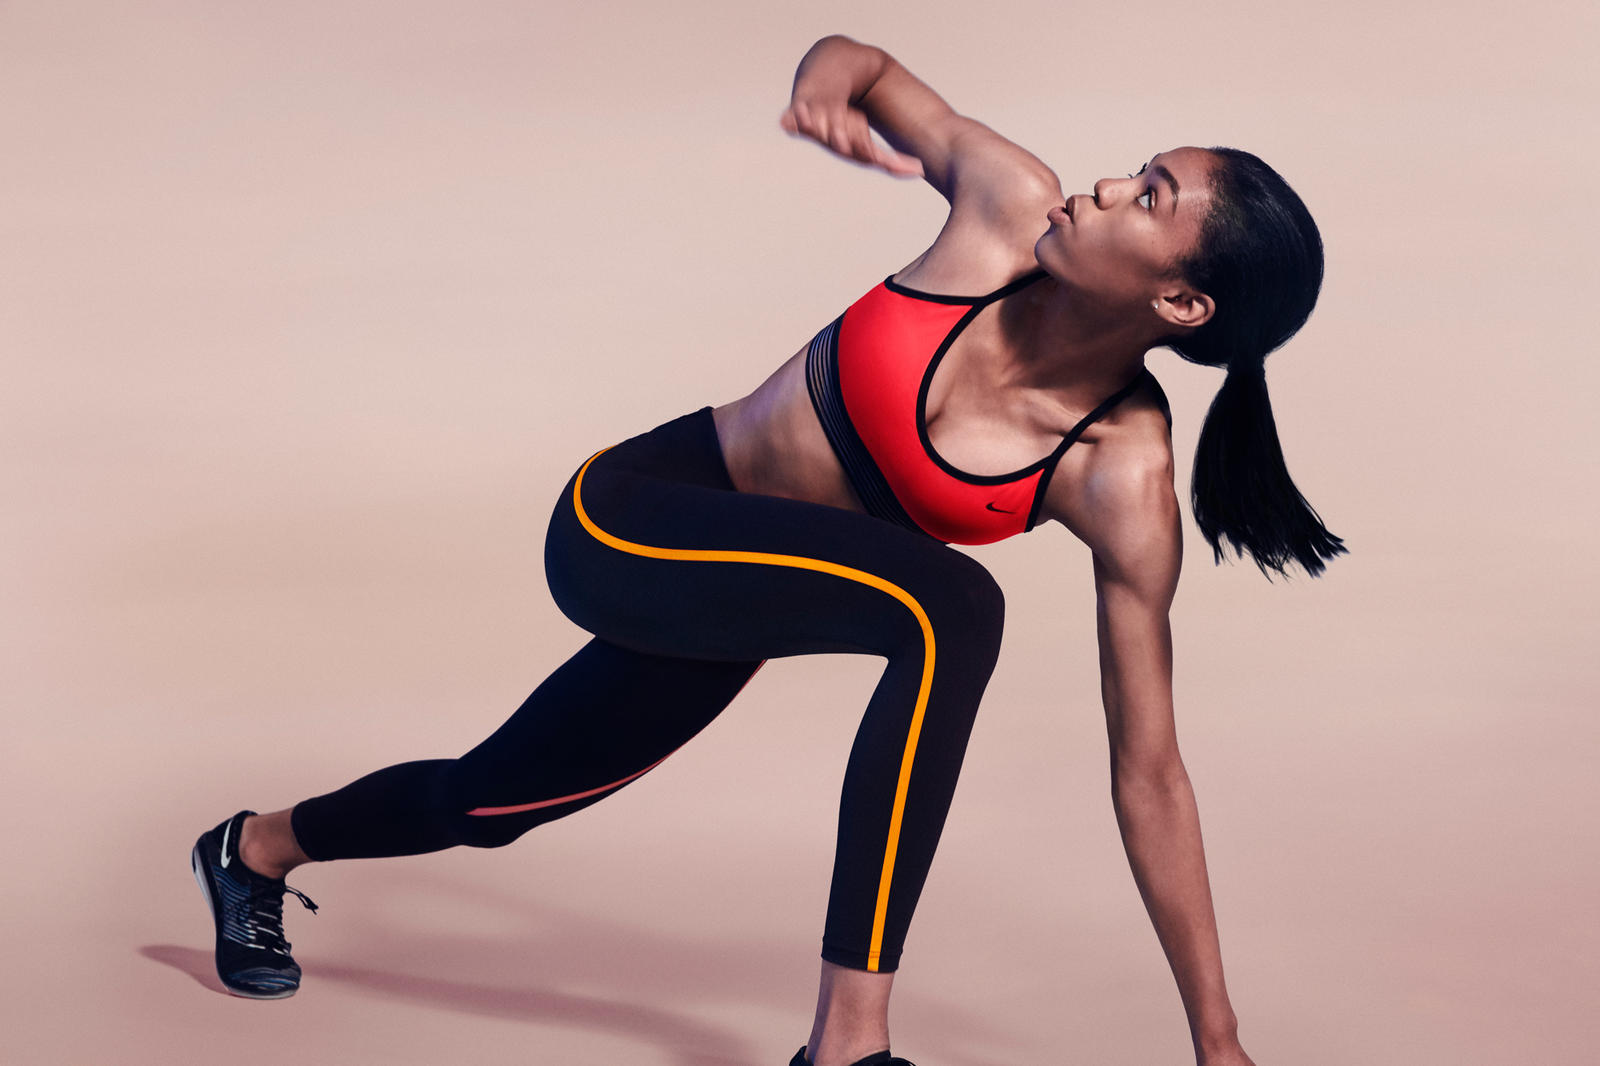 FA16_NWMN_Nike_Pro_Bra_Movement_Vashti_native_1600